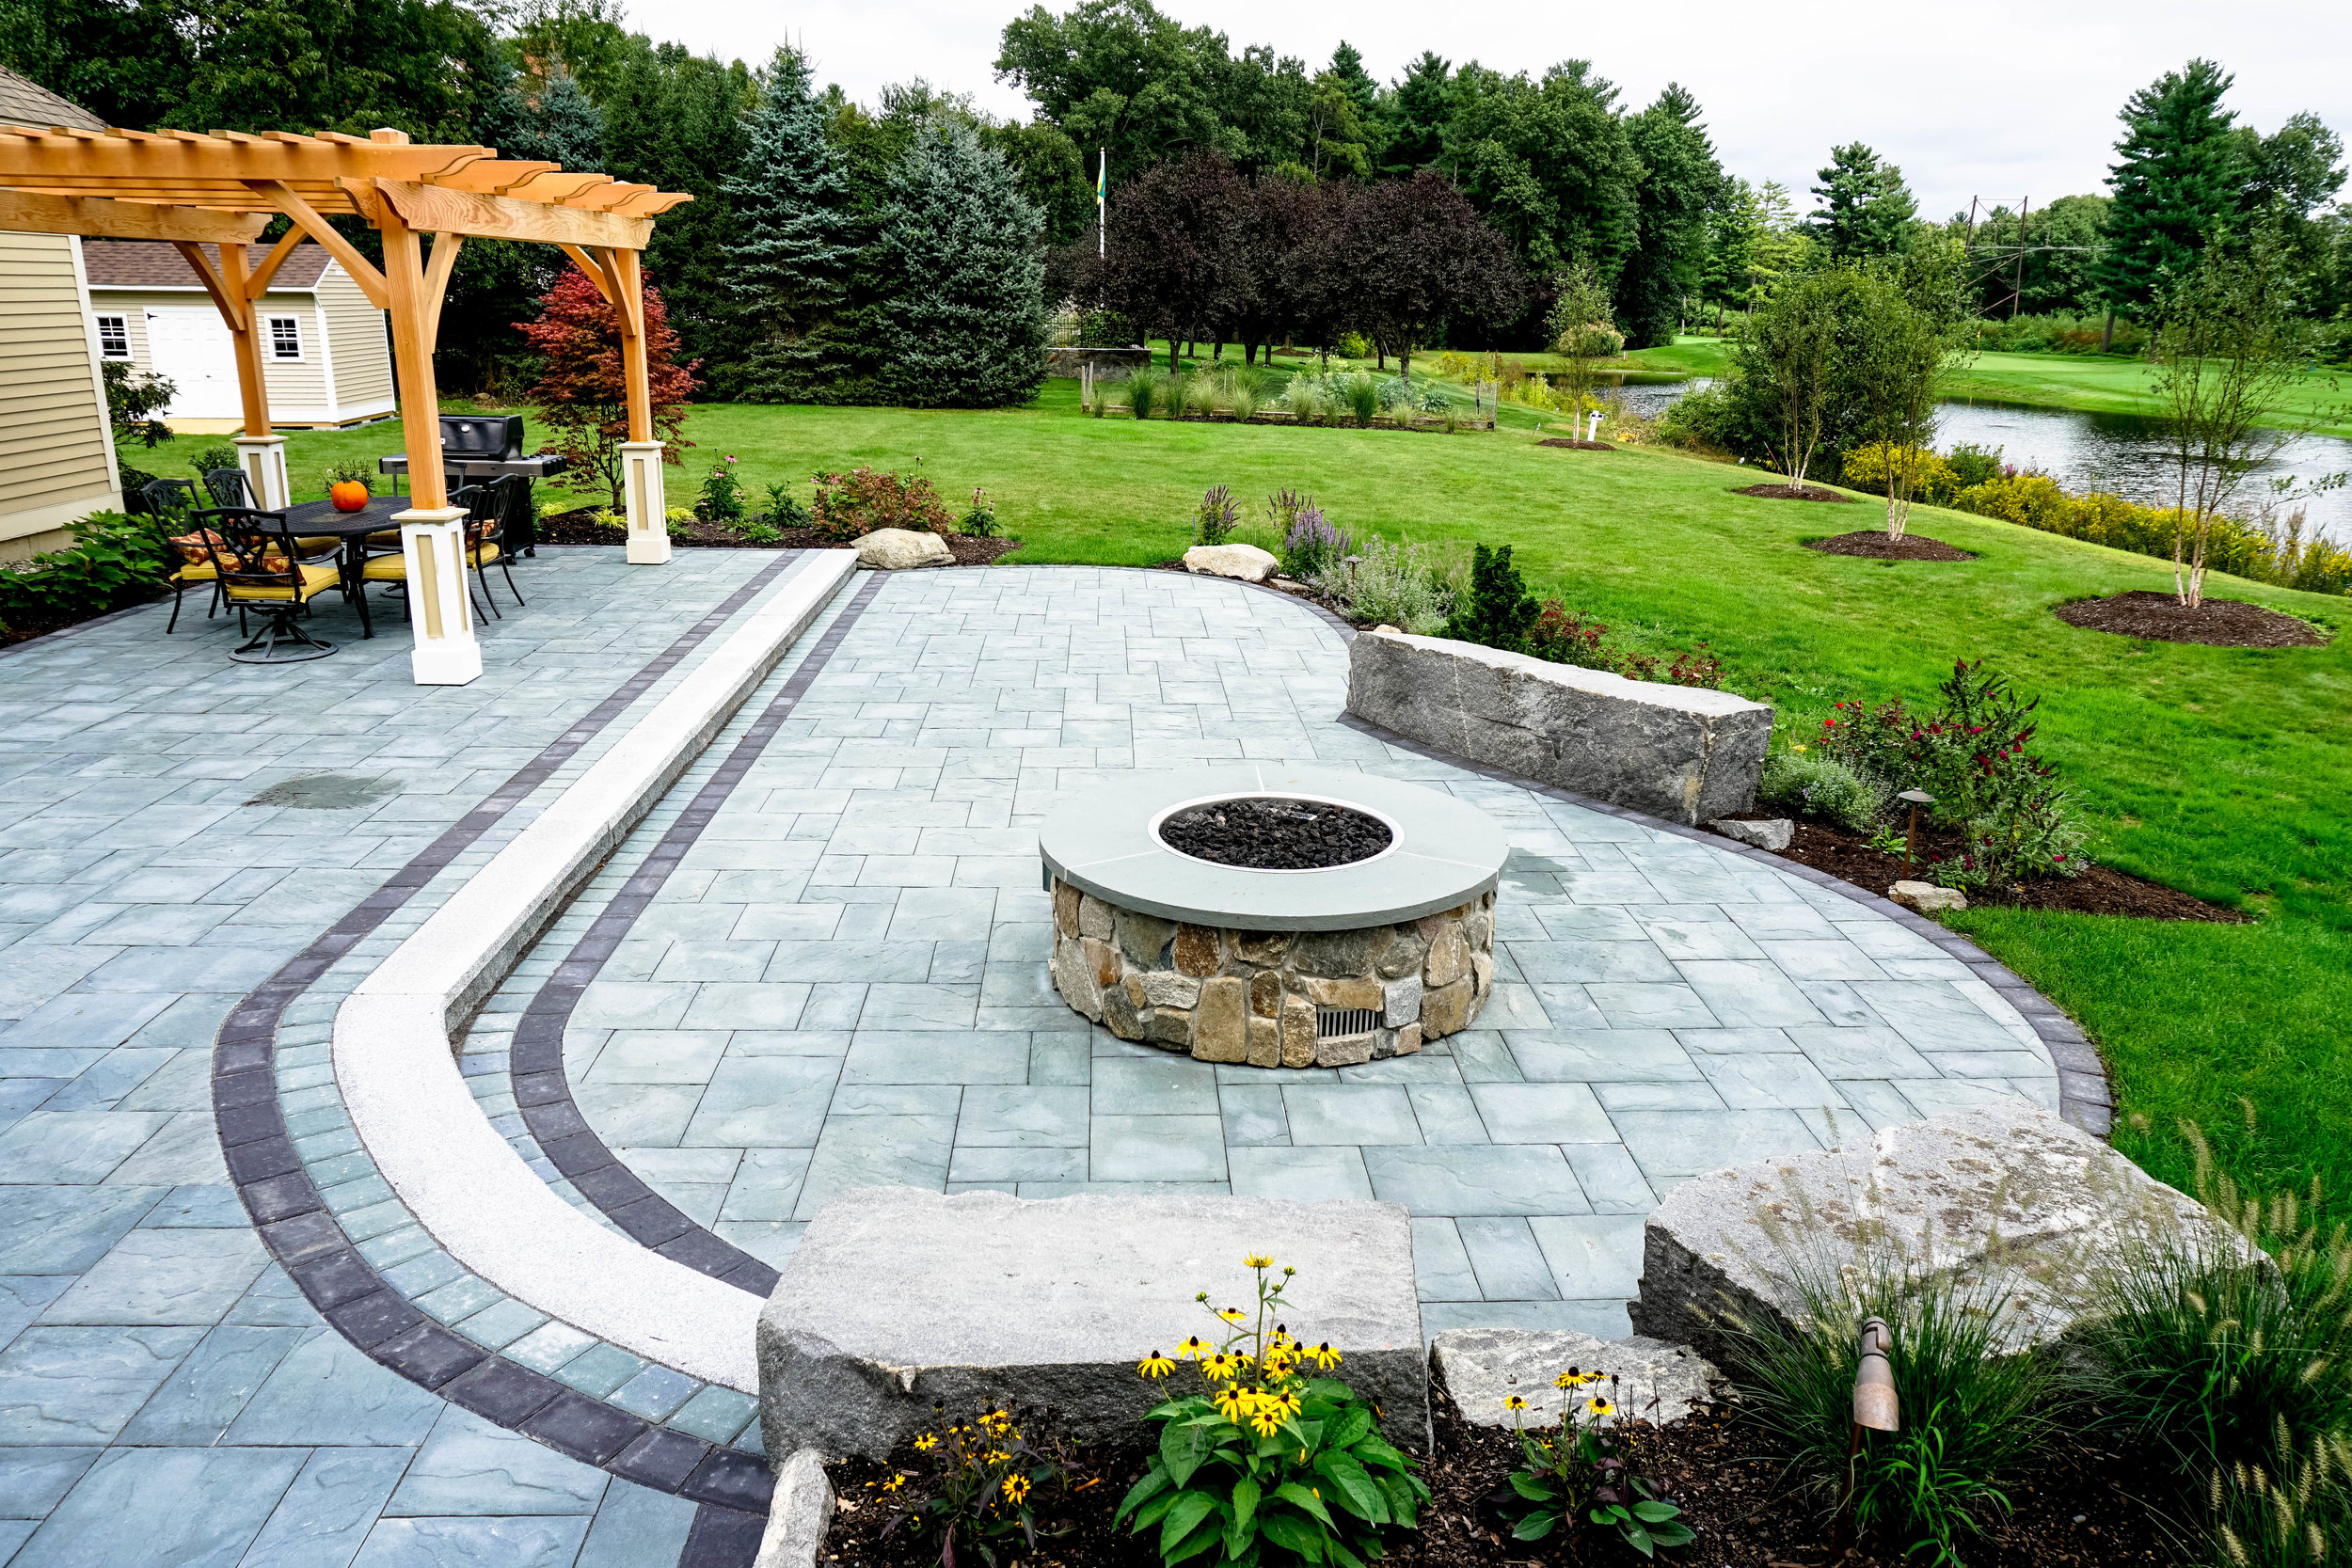 Windsor Green - Full landscape design, new plantings, lawn installation, irrigation improvement, landscape lighting, hot tub install, pergola, deck, and more. Front yard and driveway improvements coming soon!